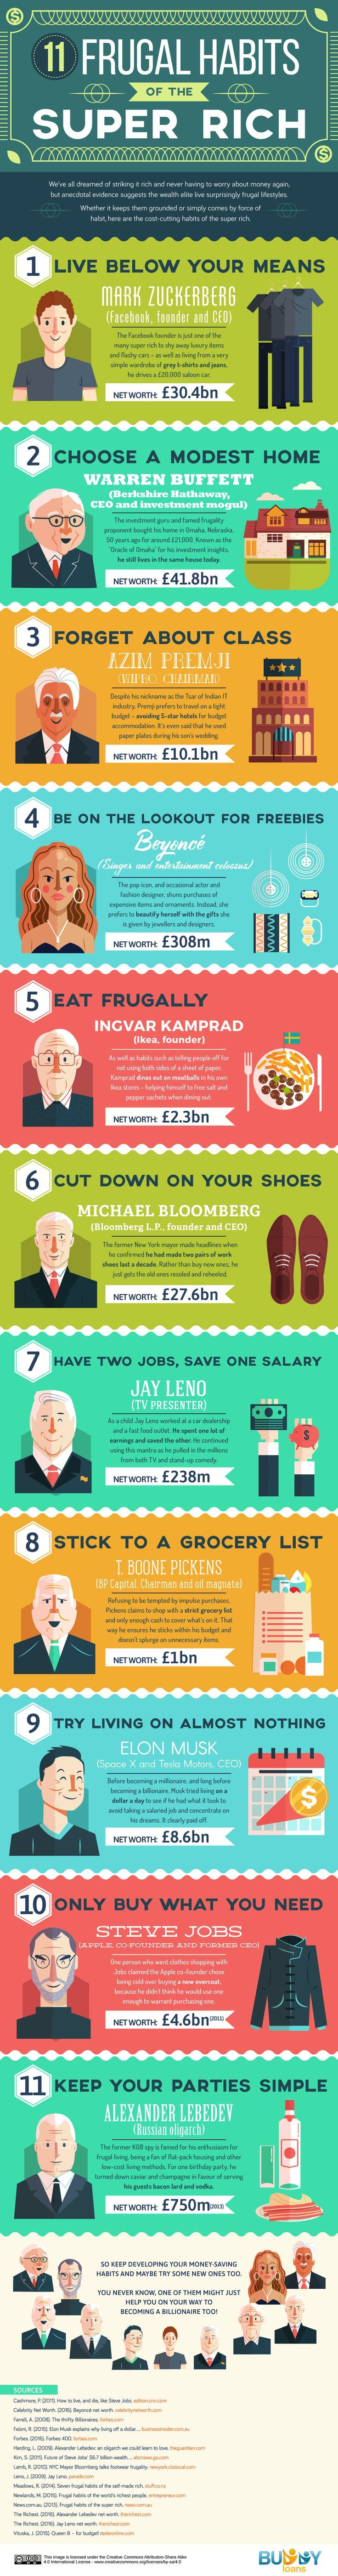 11 frugal habits of the super rich